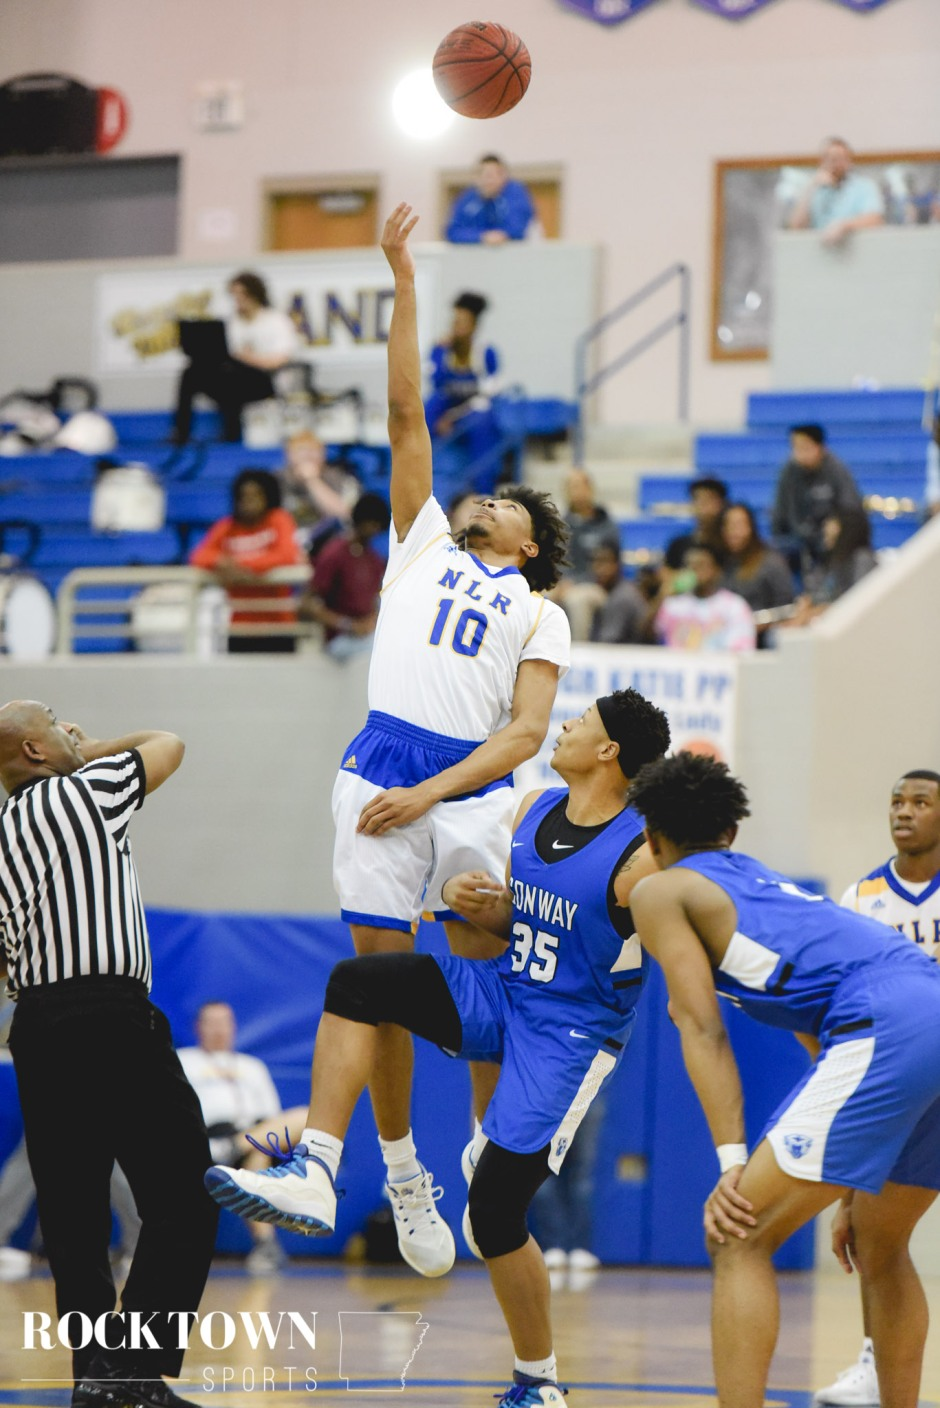 Conway_NLR_bball19(i)-41